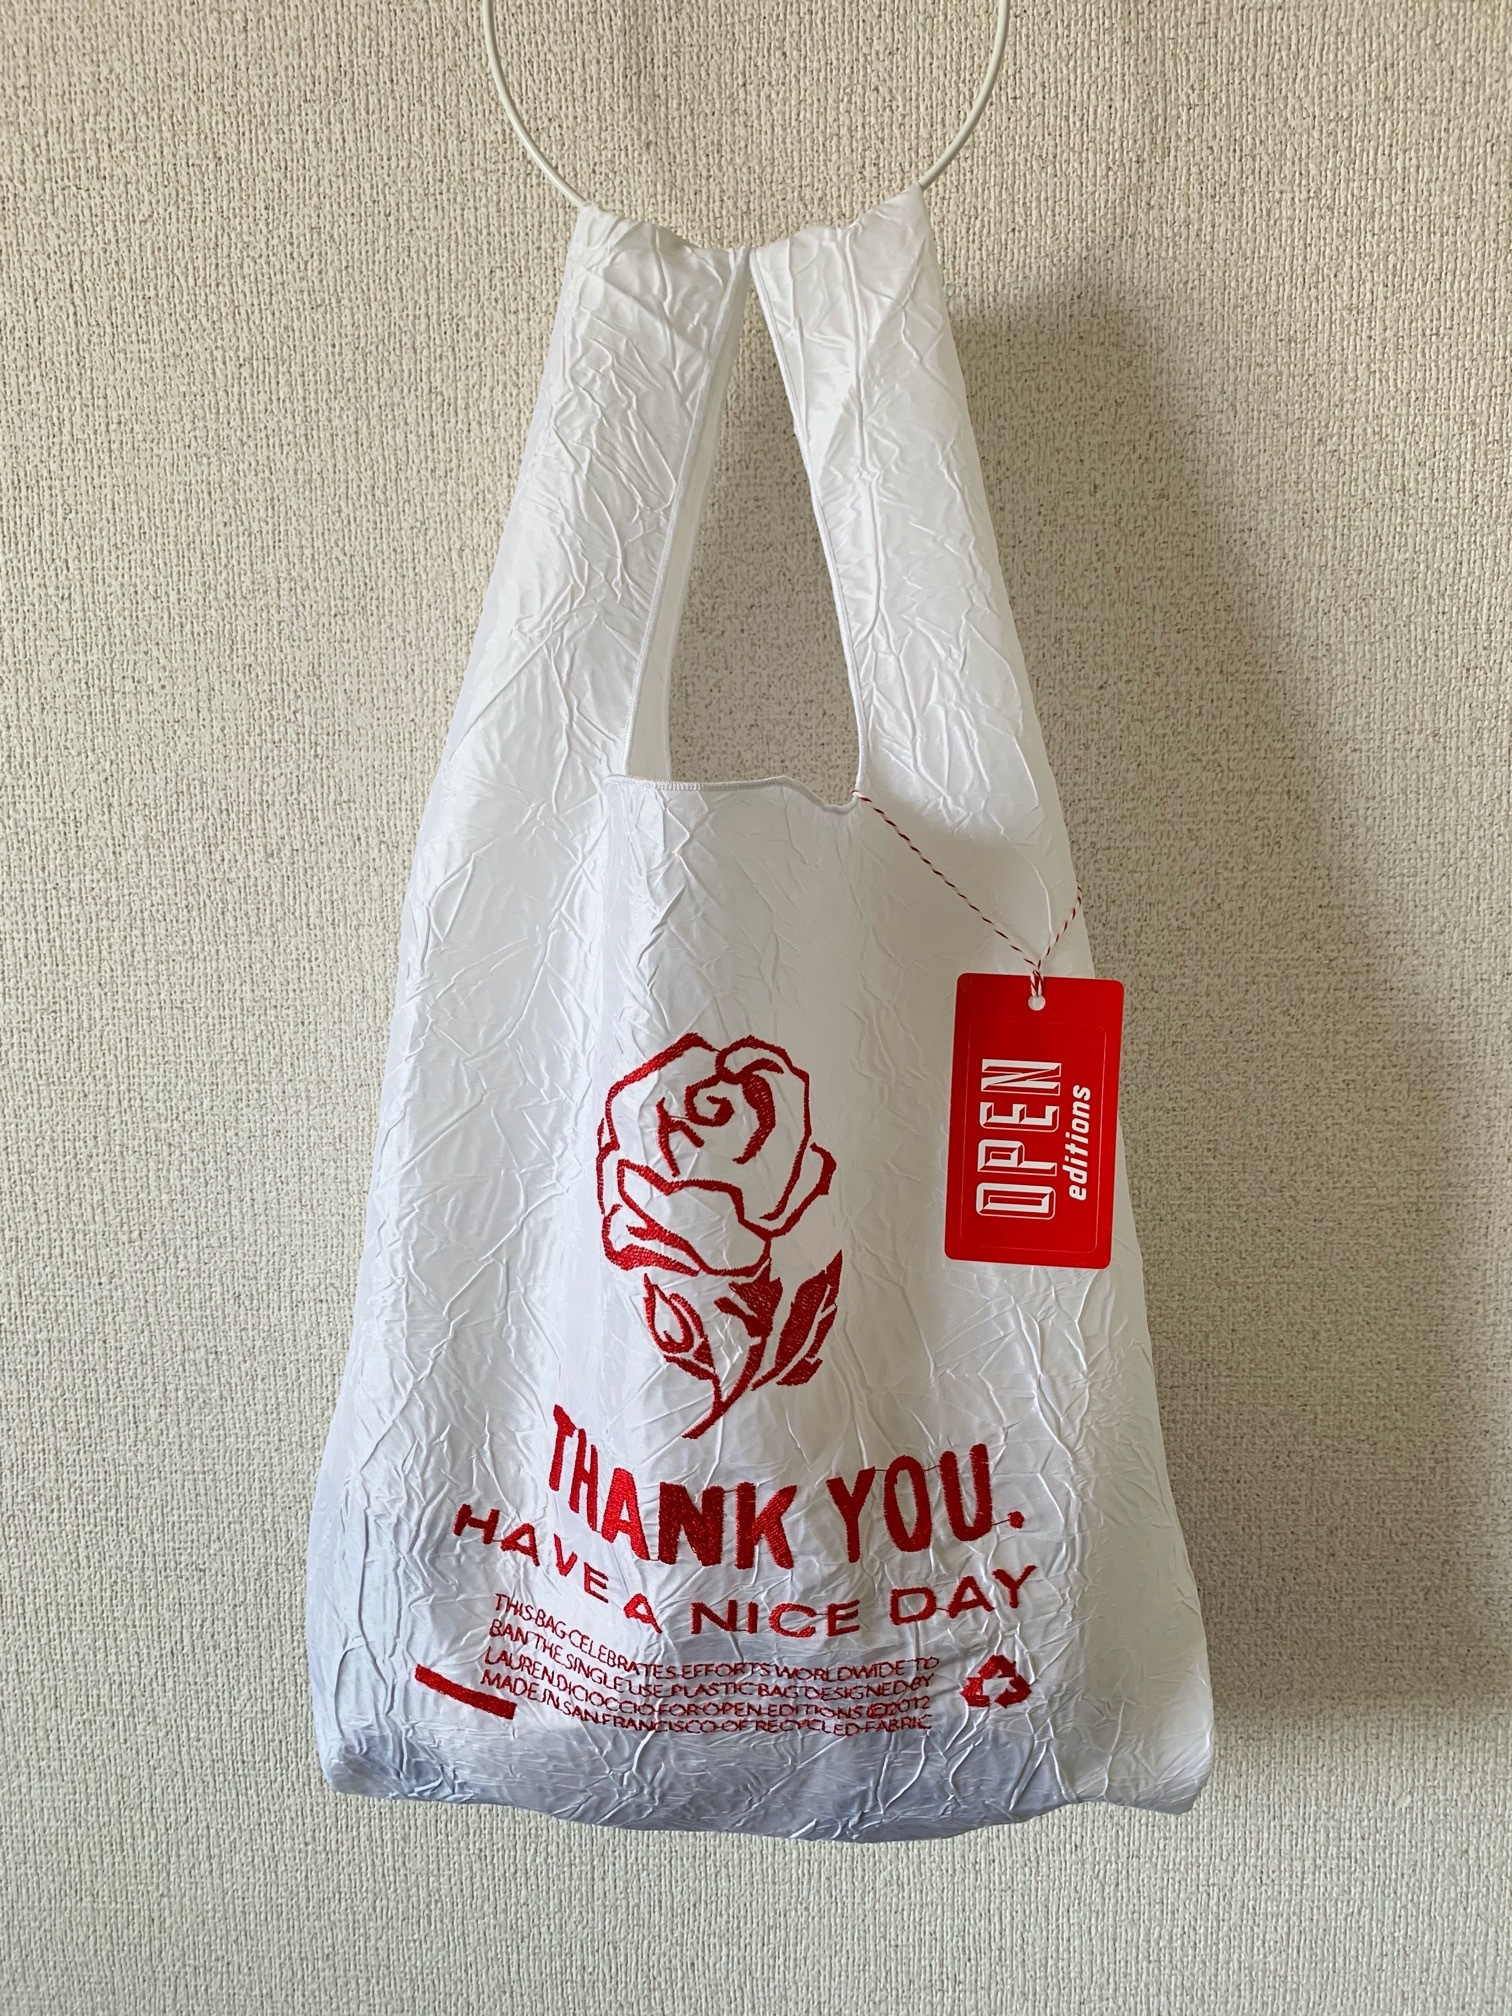 【OPEN EDITIONS / 送料無料】THANK YOU TOTE エコバッグ/ ROSE White